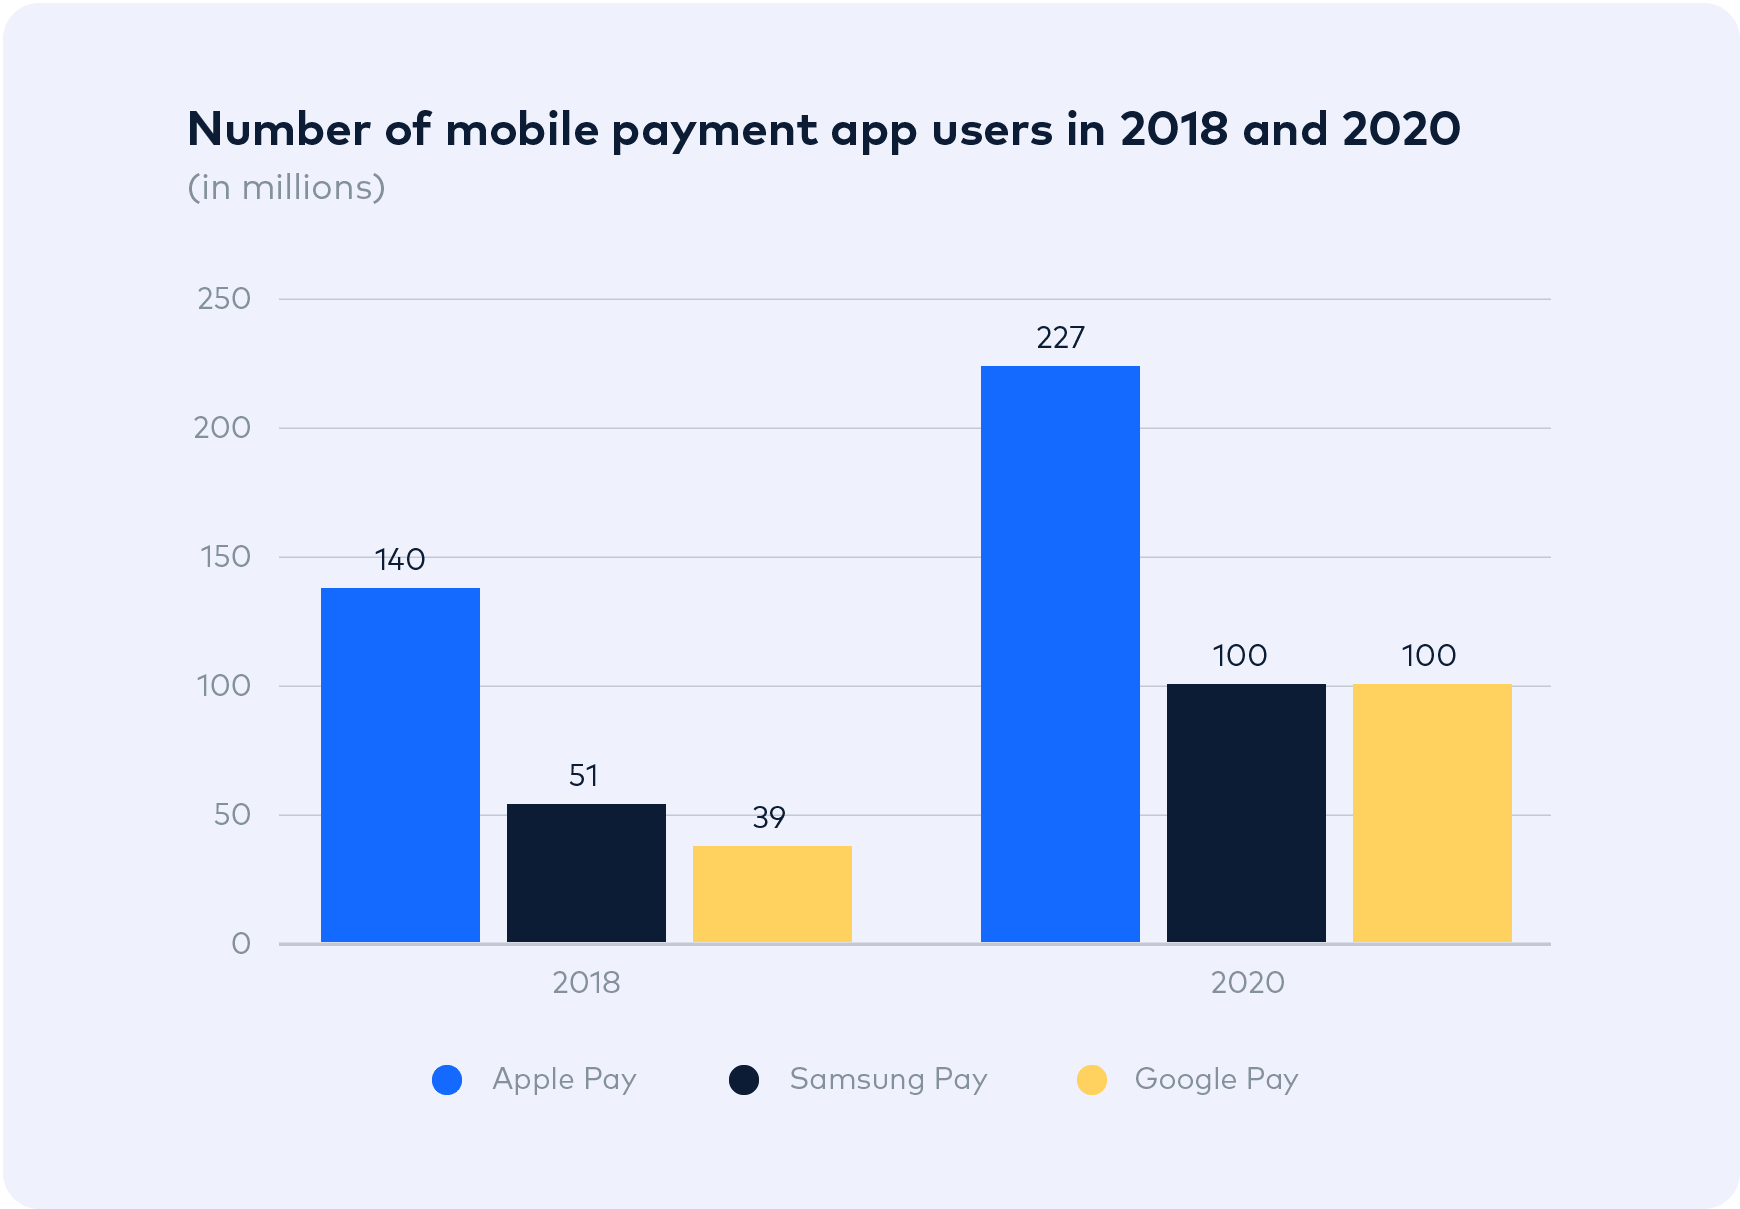 Number of mobile payment users 2018 & 2020